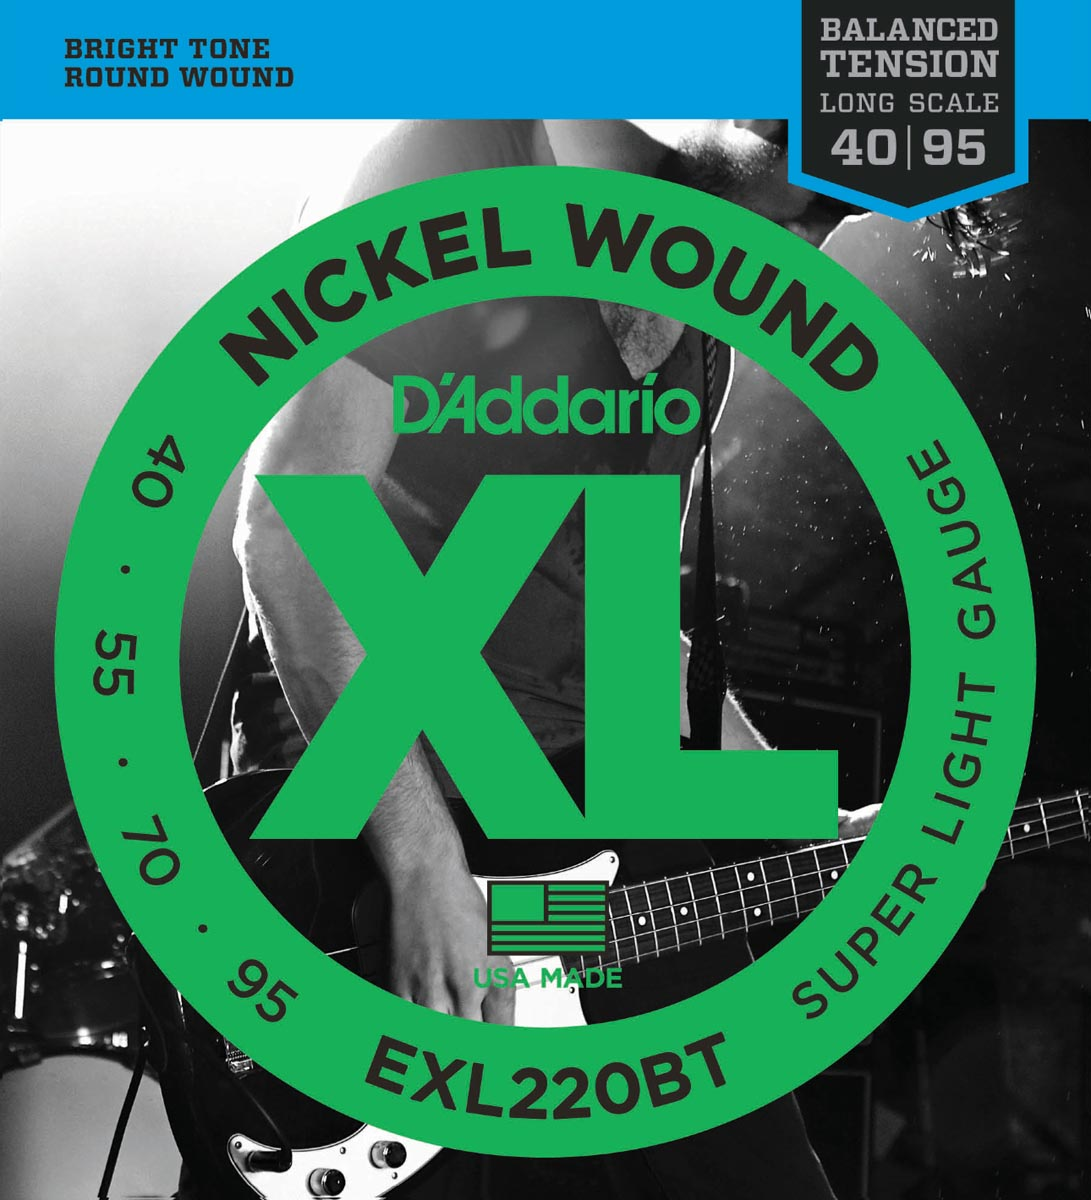 DADDARIO EXL220BT BALANCED TENSION SUPER LIGHT [40-95]